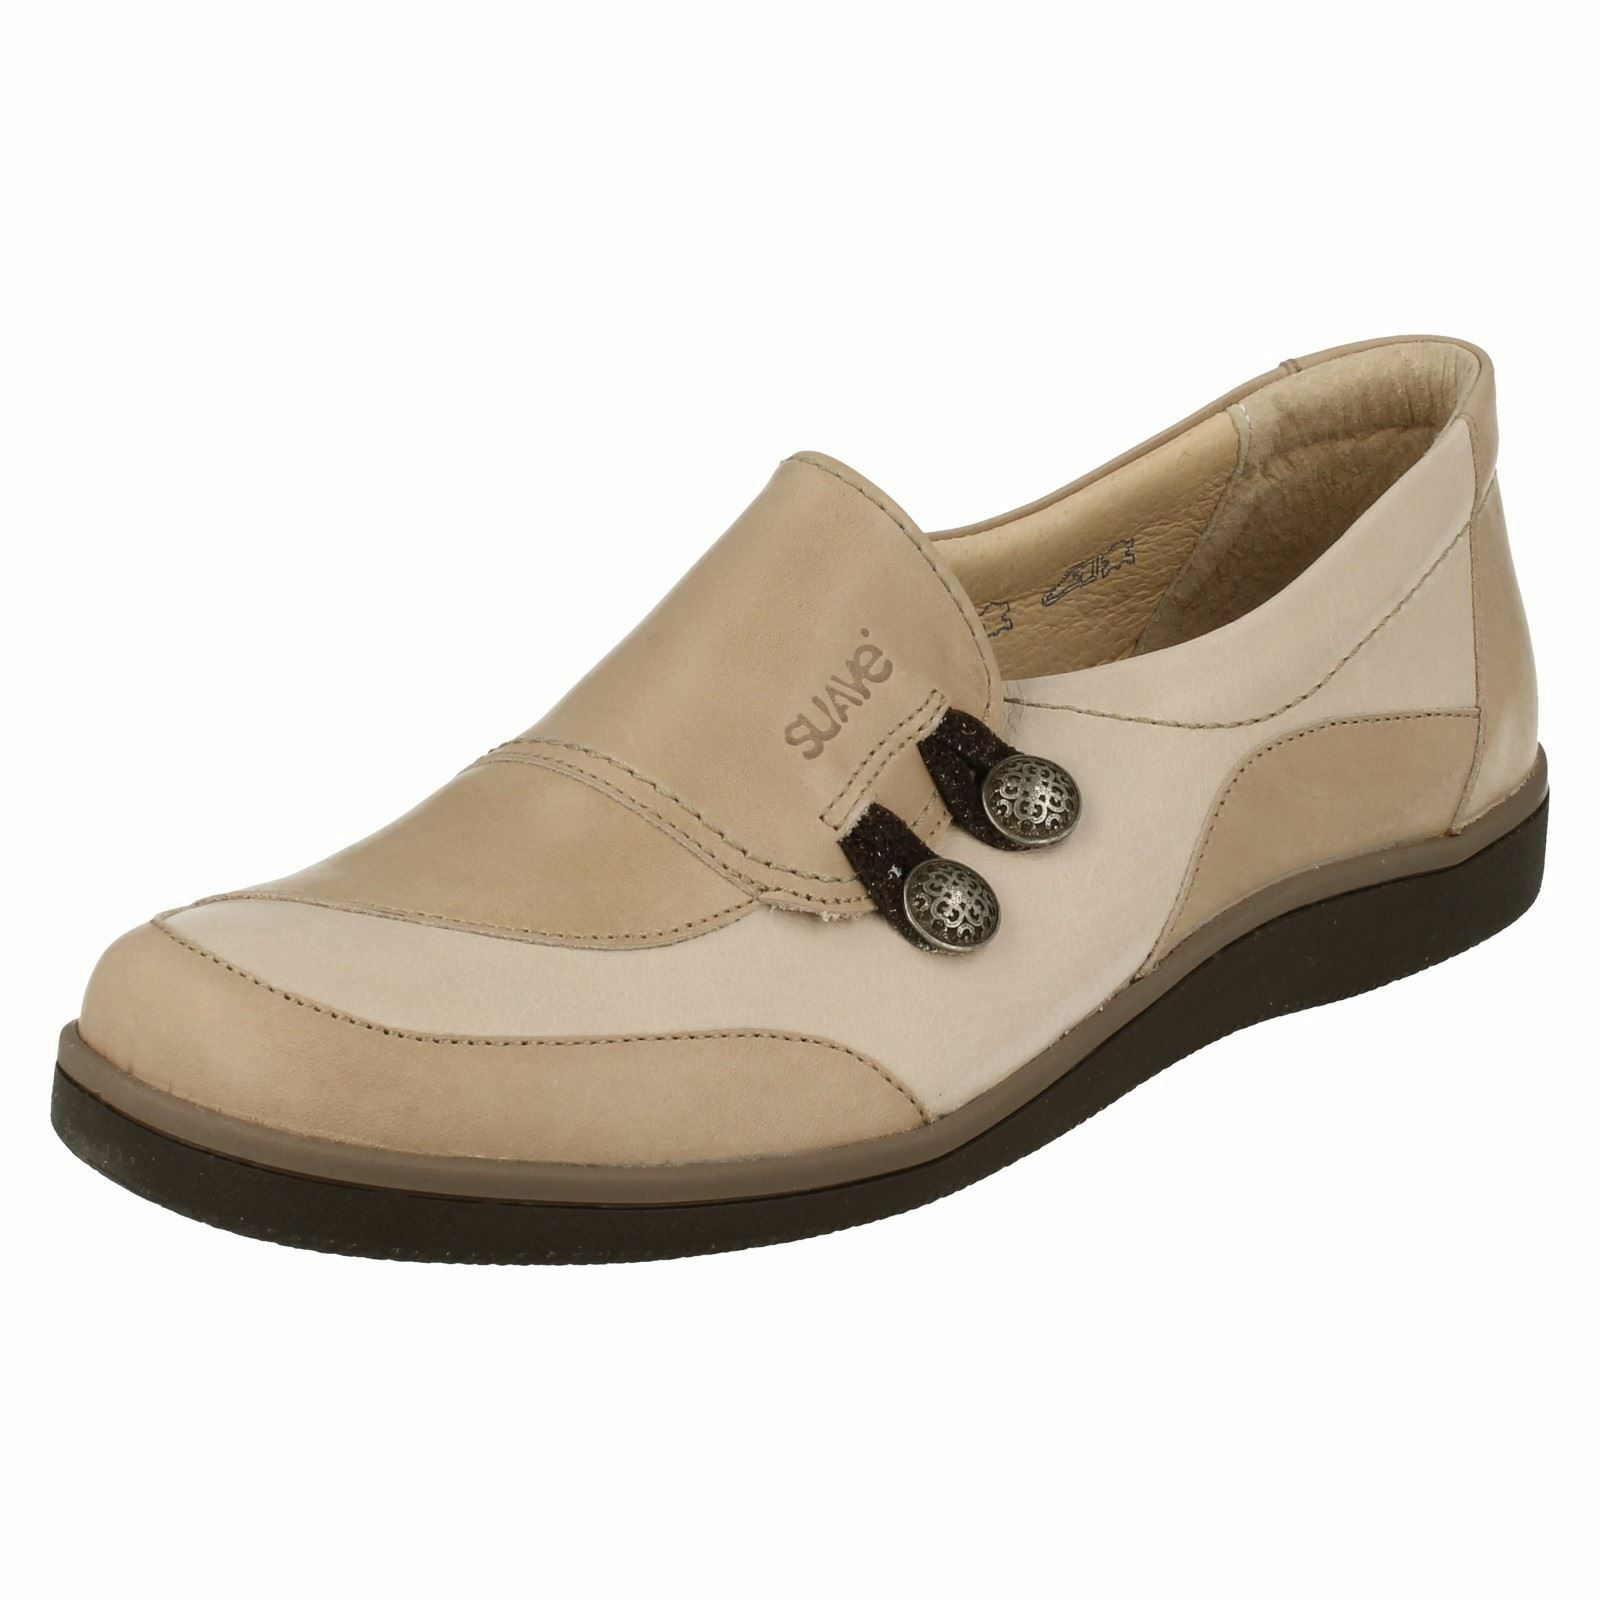 Suave 'Lucy' Ladies Leather Stone/Beige Casual Leather Ladies Comfort Shoes eecdcf